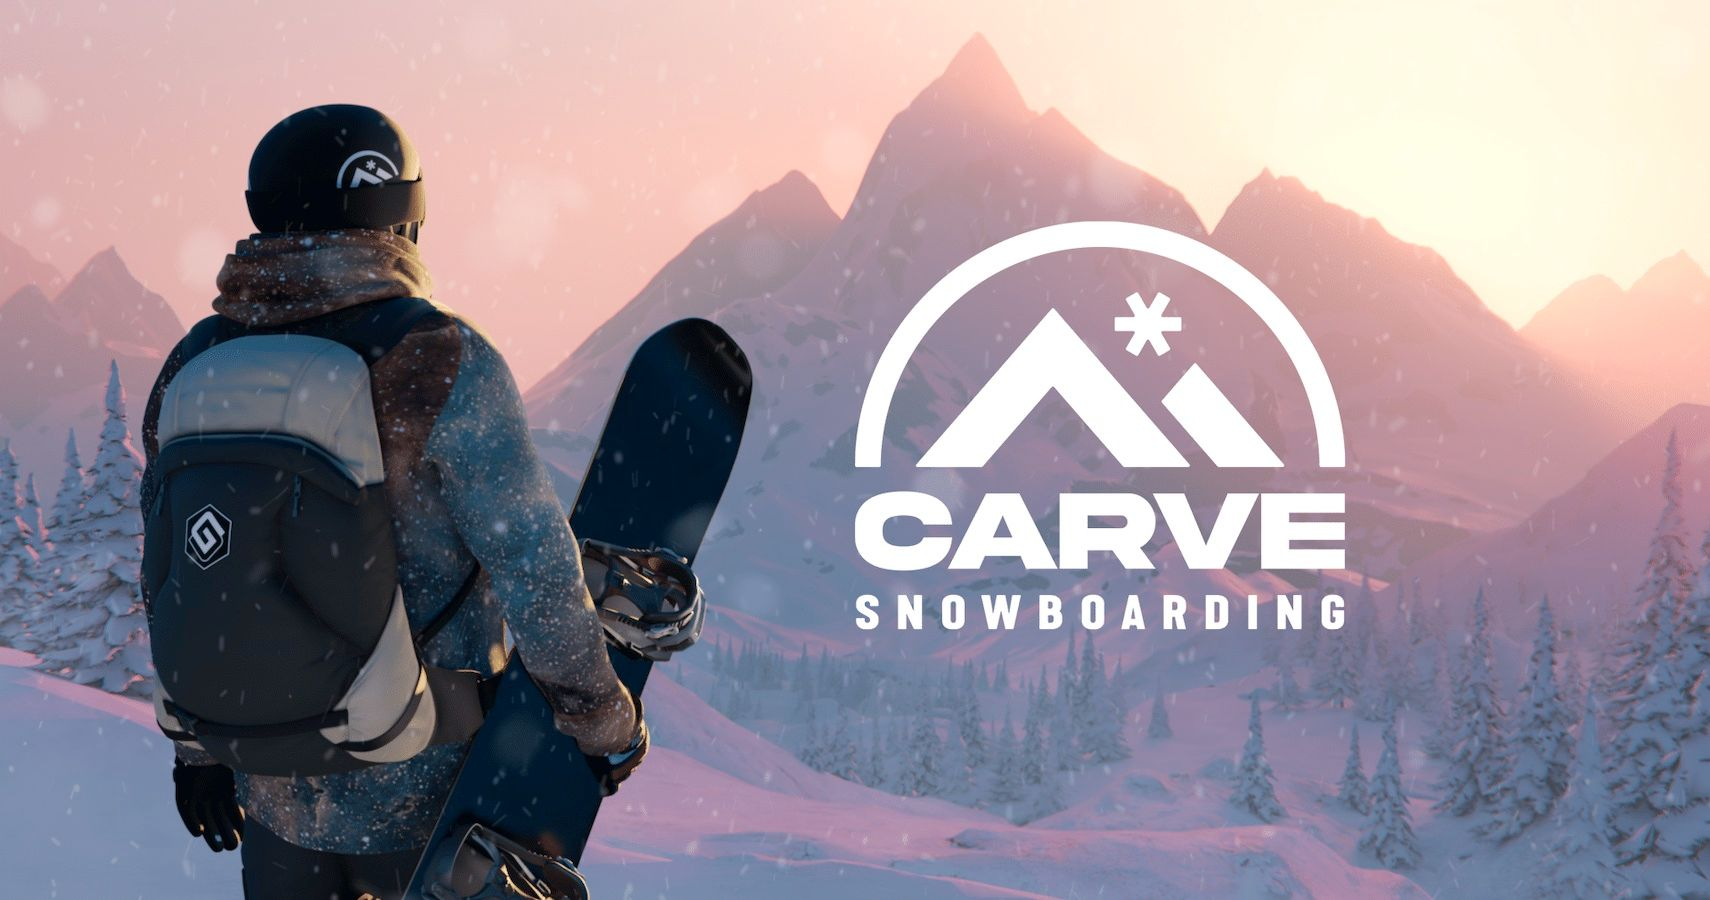 Carve Snowboarding Brings The Feel Of 1080 To VR